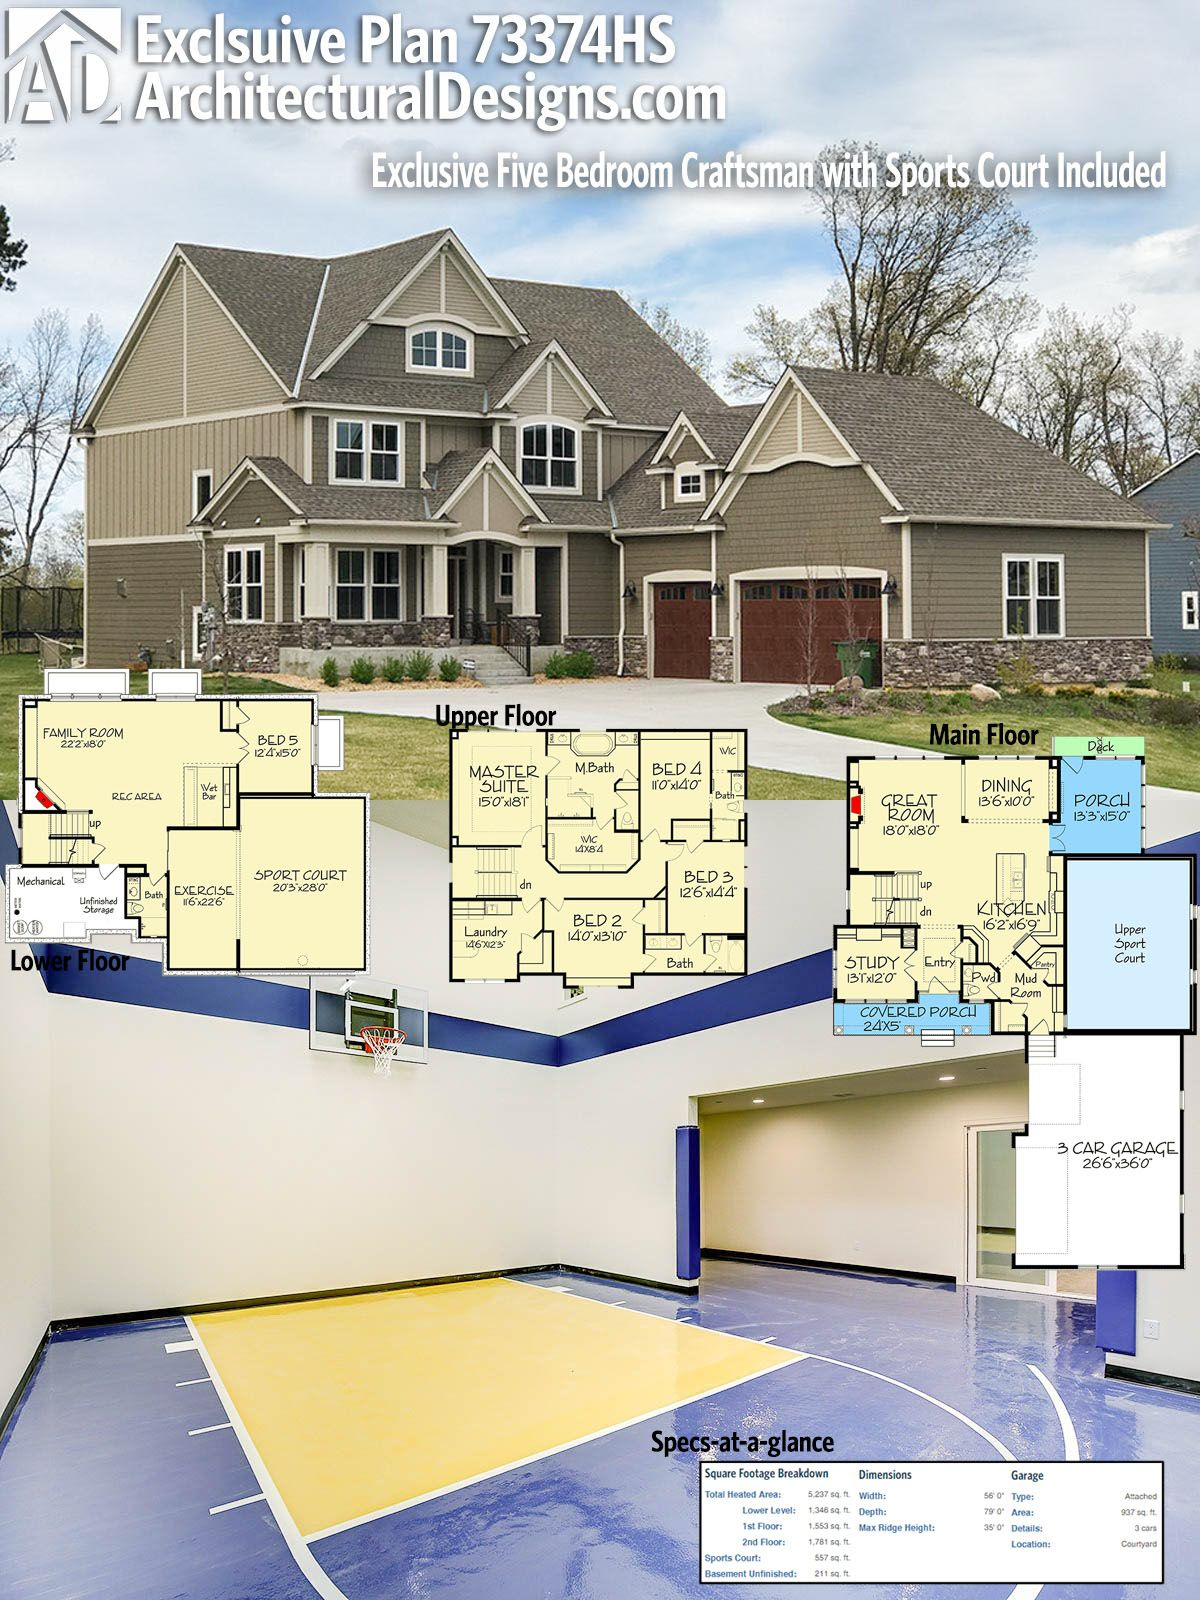 Designed for the large active family Architectural